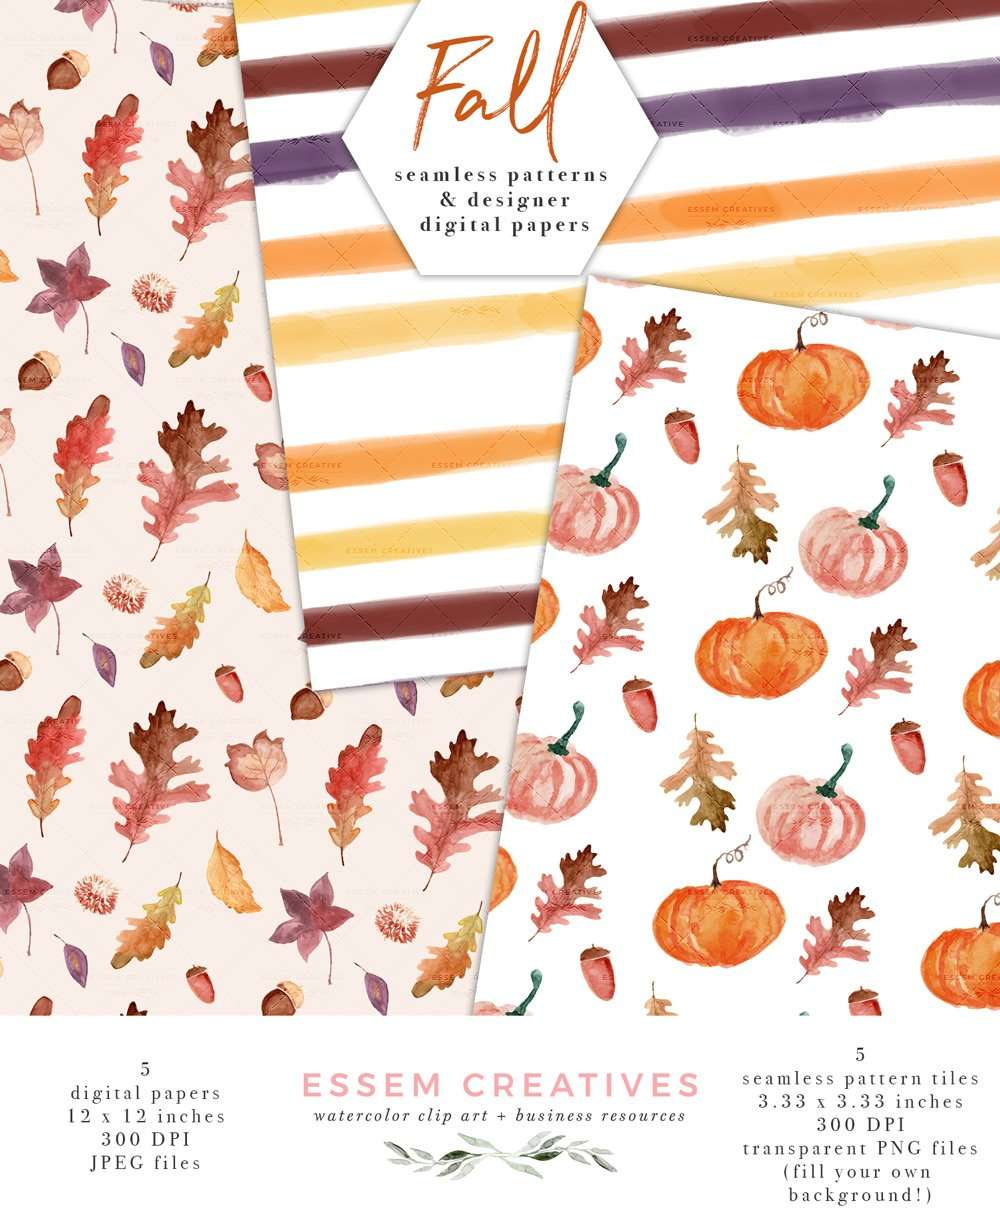 Watercolor Fall Digital Papers Seamless Repeat Pattern Tiles With Fall Leaves Pumpkins Scrapbooking Planner Stickers Essem Creatives Watercolor Clipart Business Branding